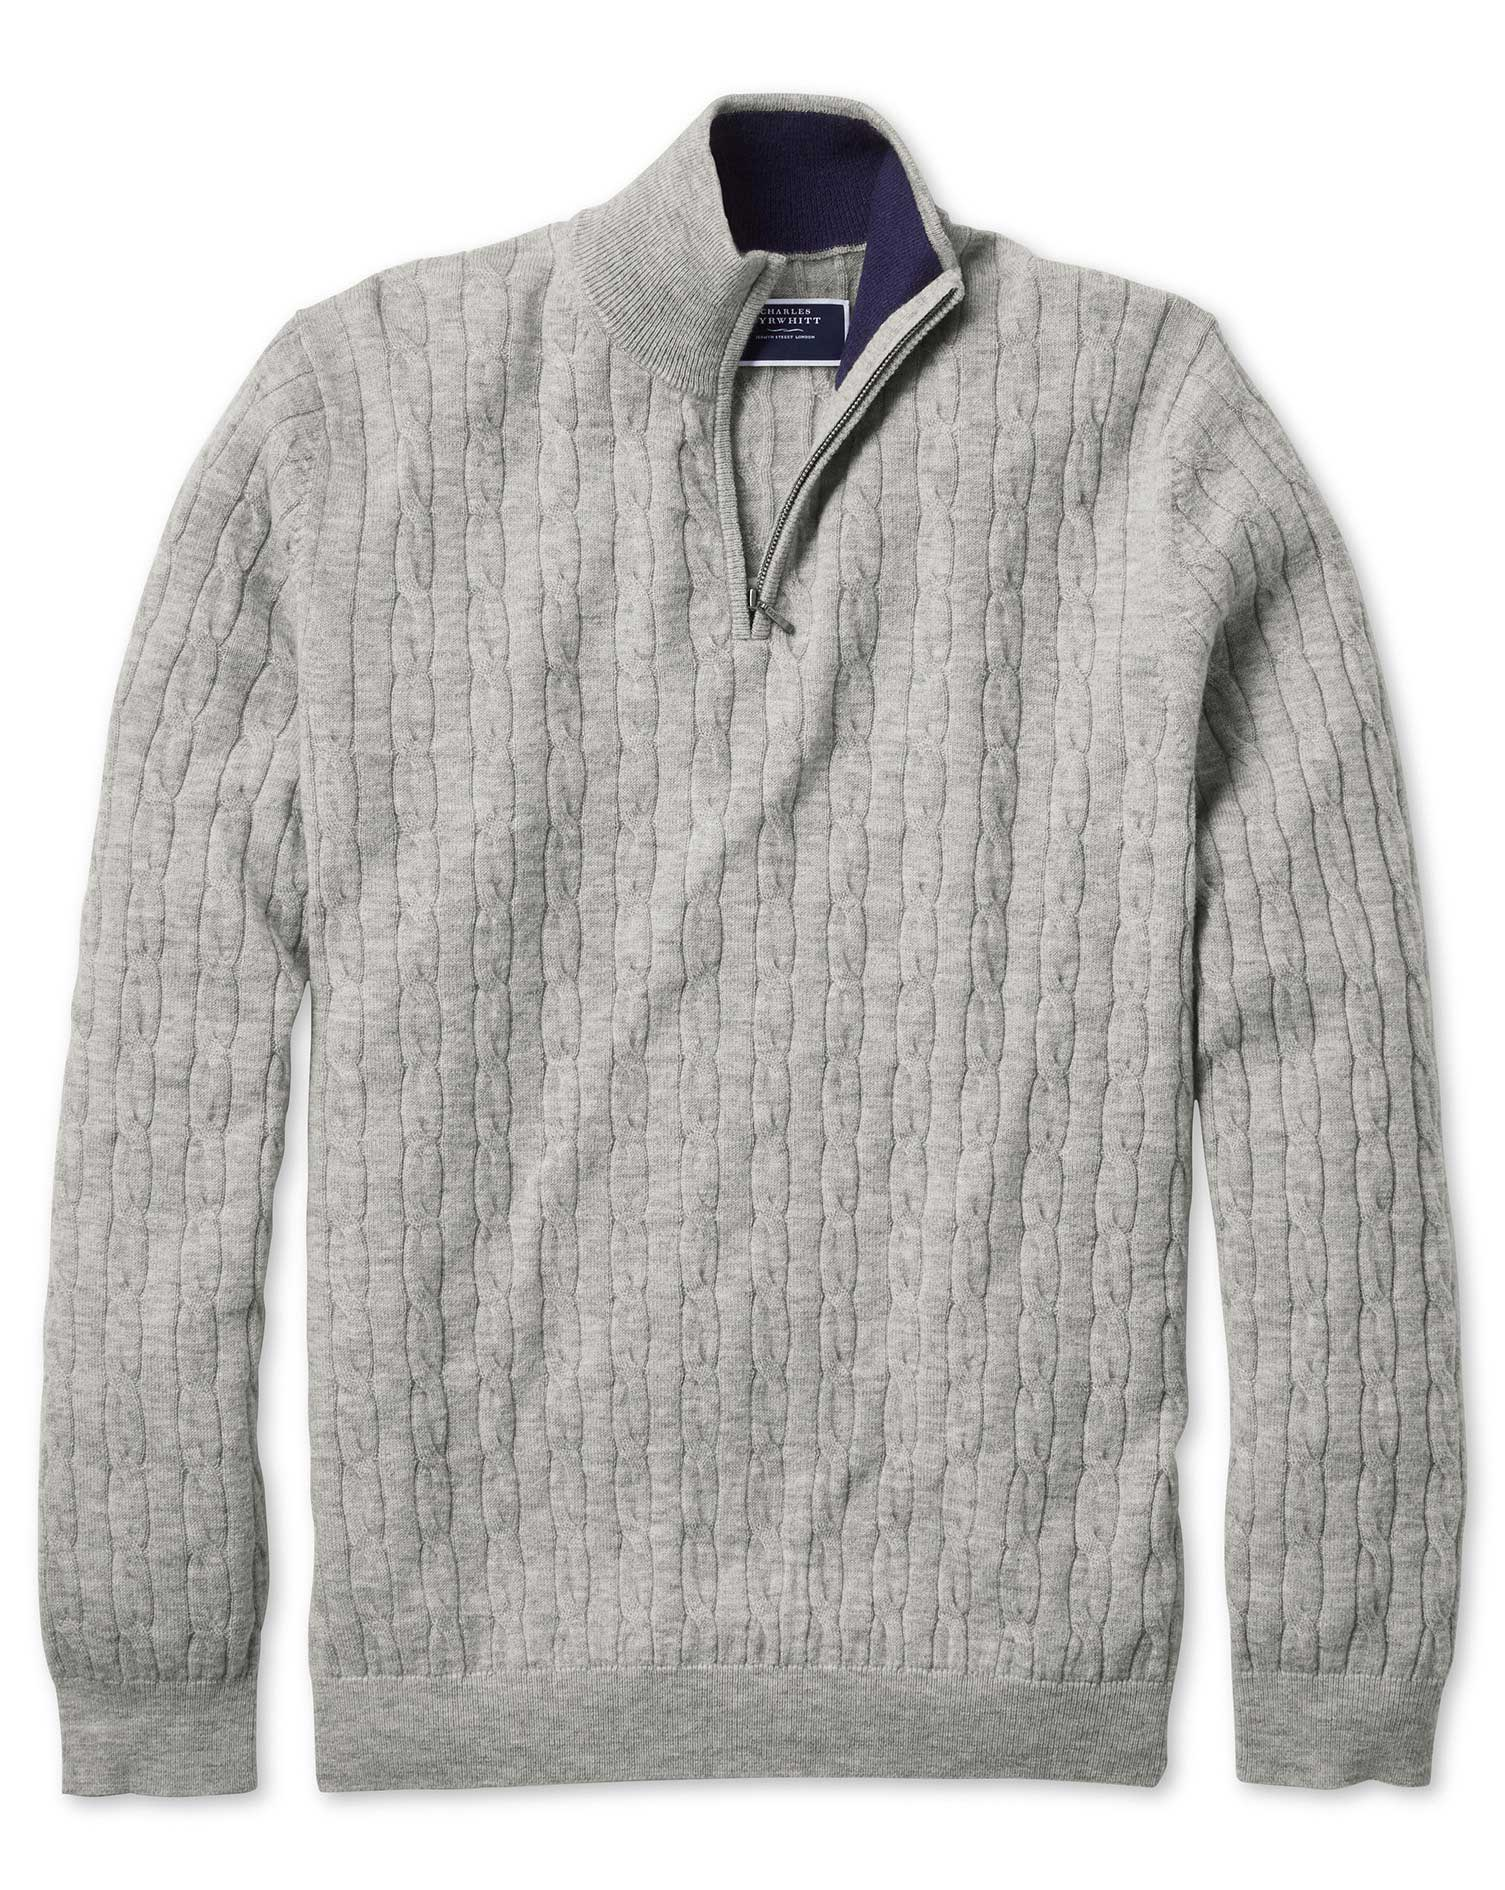 Light Grey Zip Neck Lambswool Cable Knit Jumper Size XXXL by Charles Tyrwhitt